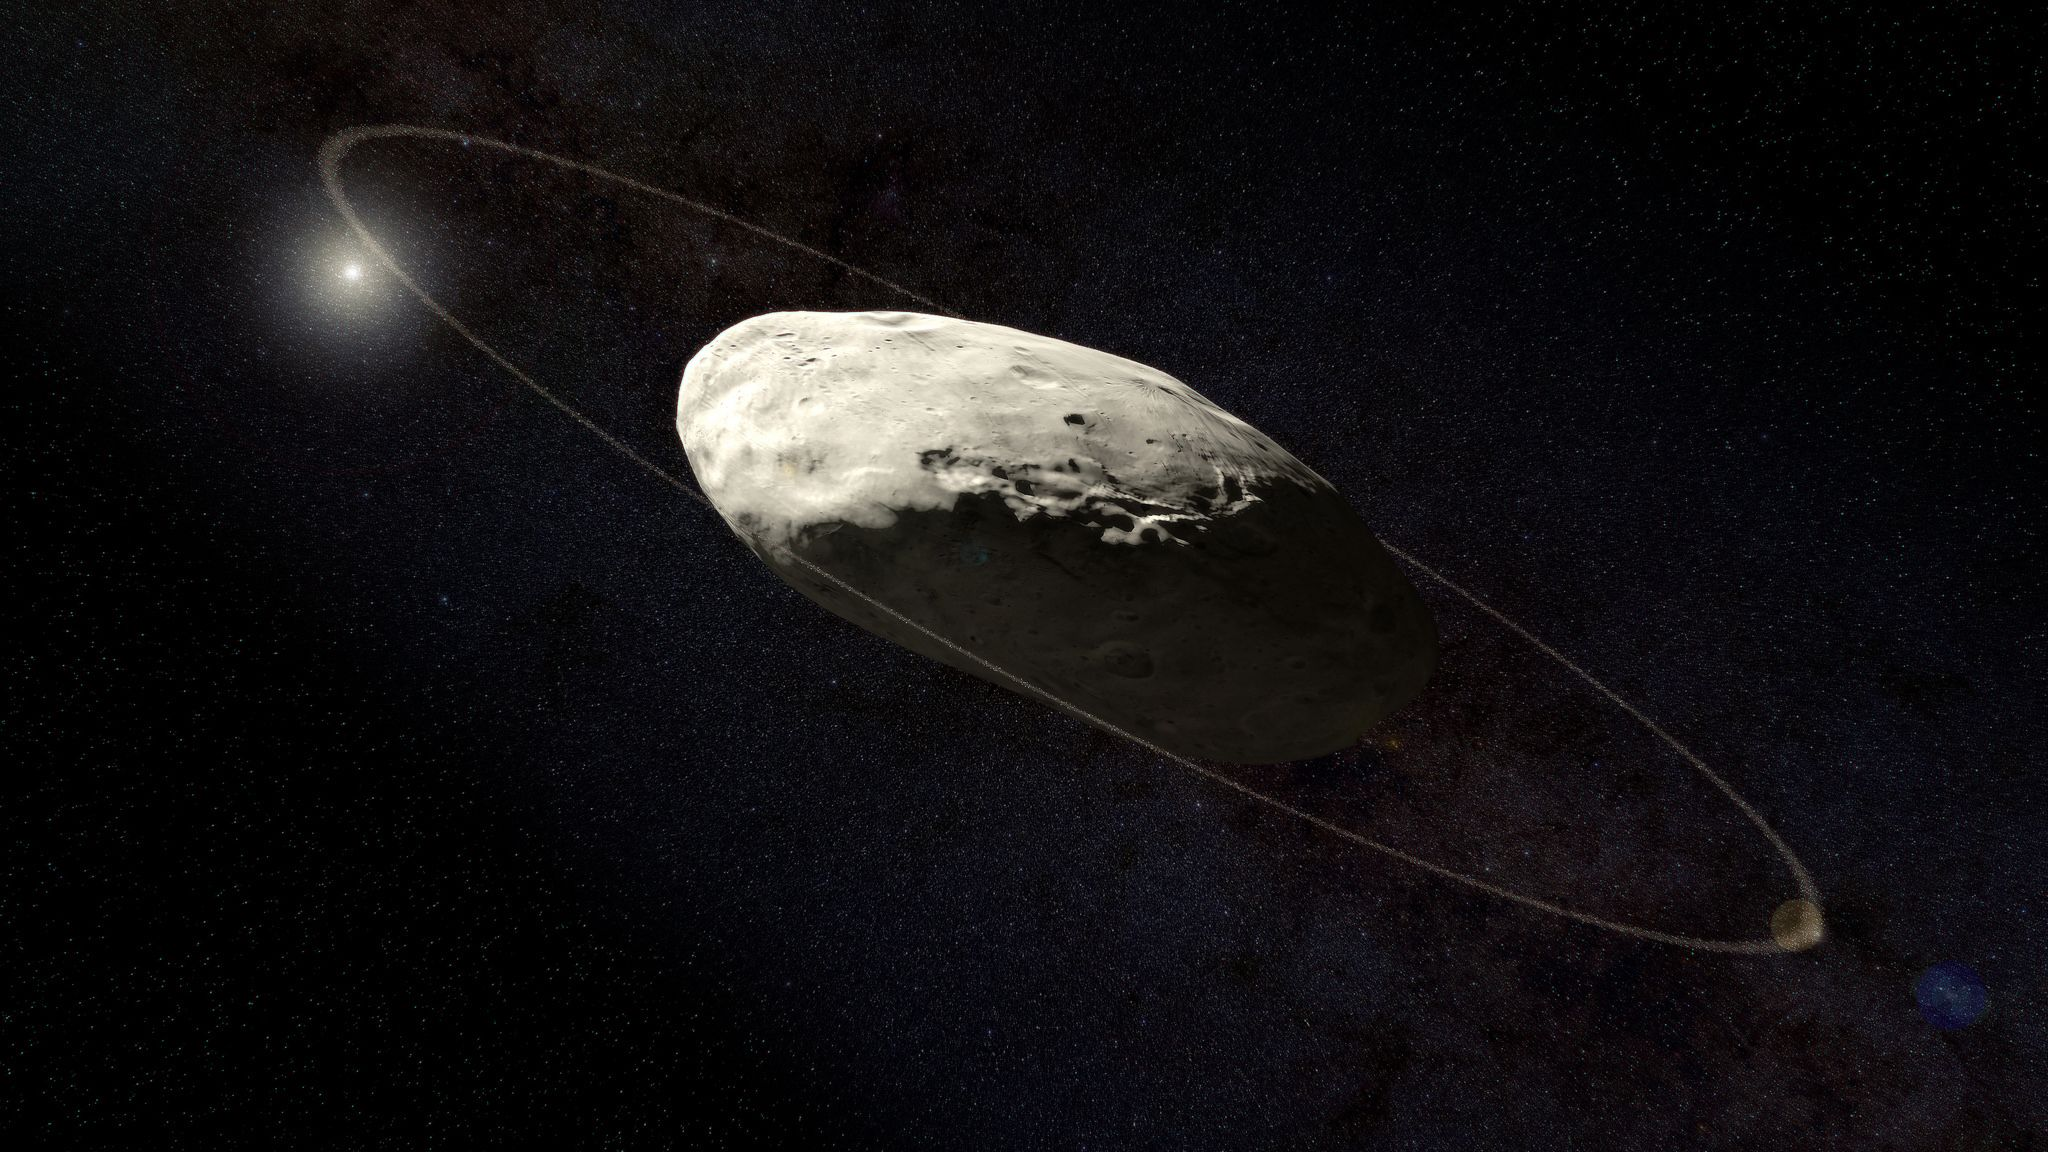 10 Facts About the Dwarf Planet Haumea | Mental Floss